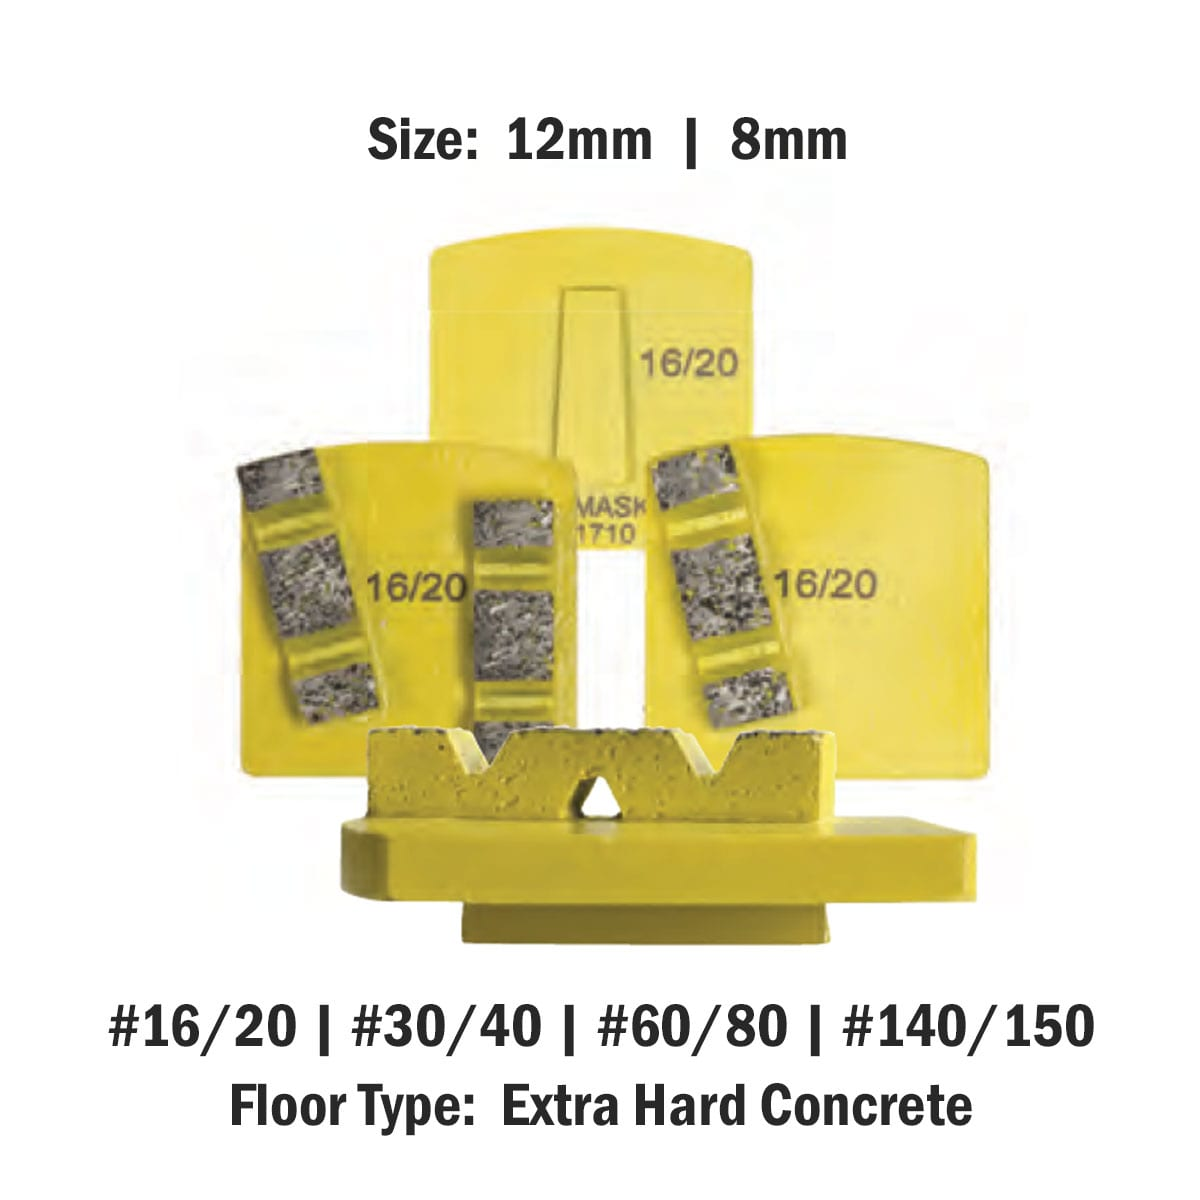 Extra Hard Concrete 8 mm - 12mm Concrete Diamond Tool Yellow Super Soft #16/20   #30/40   #60/80   #140/150 by Scanmaskin